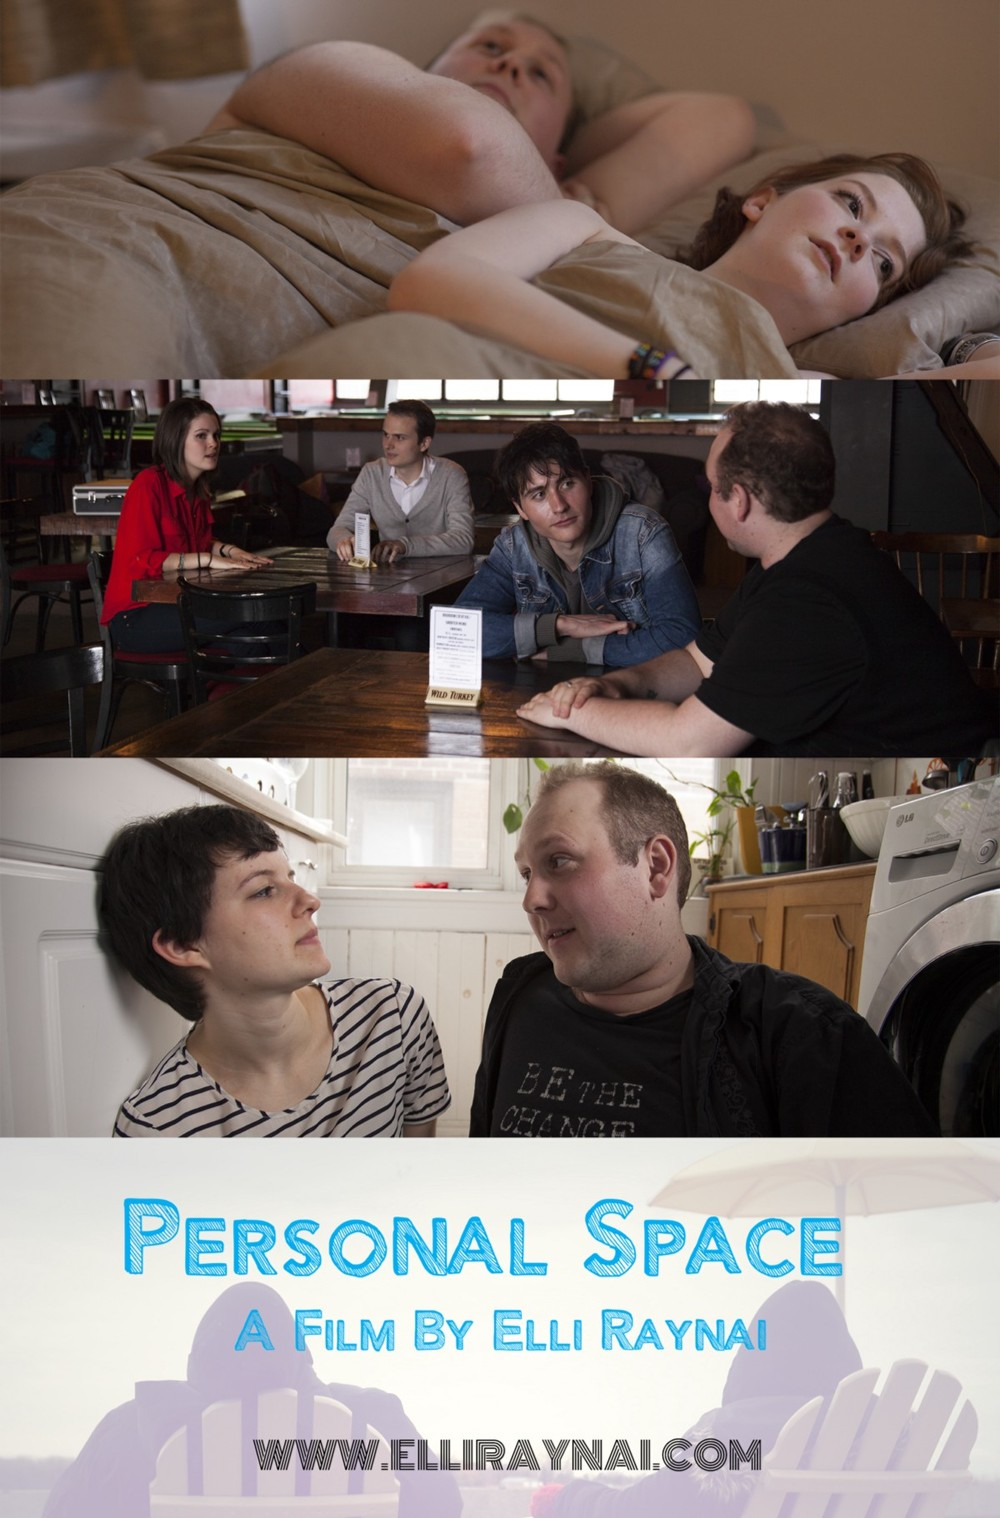 personal space poster